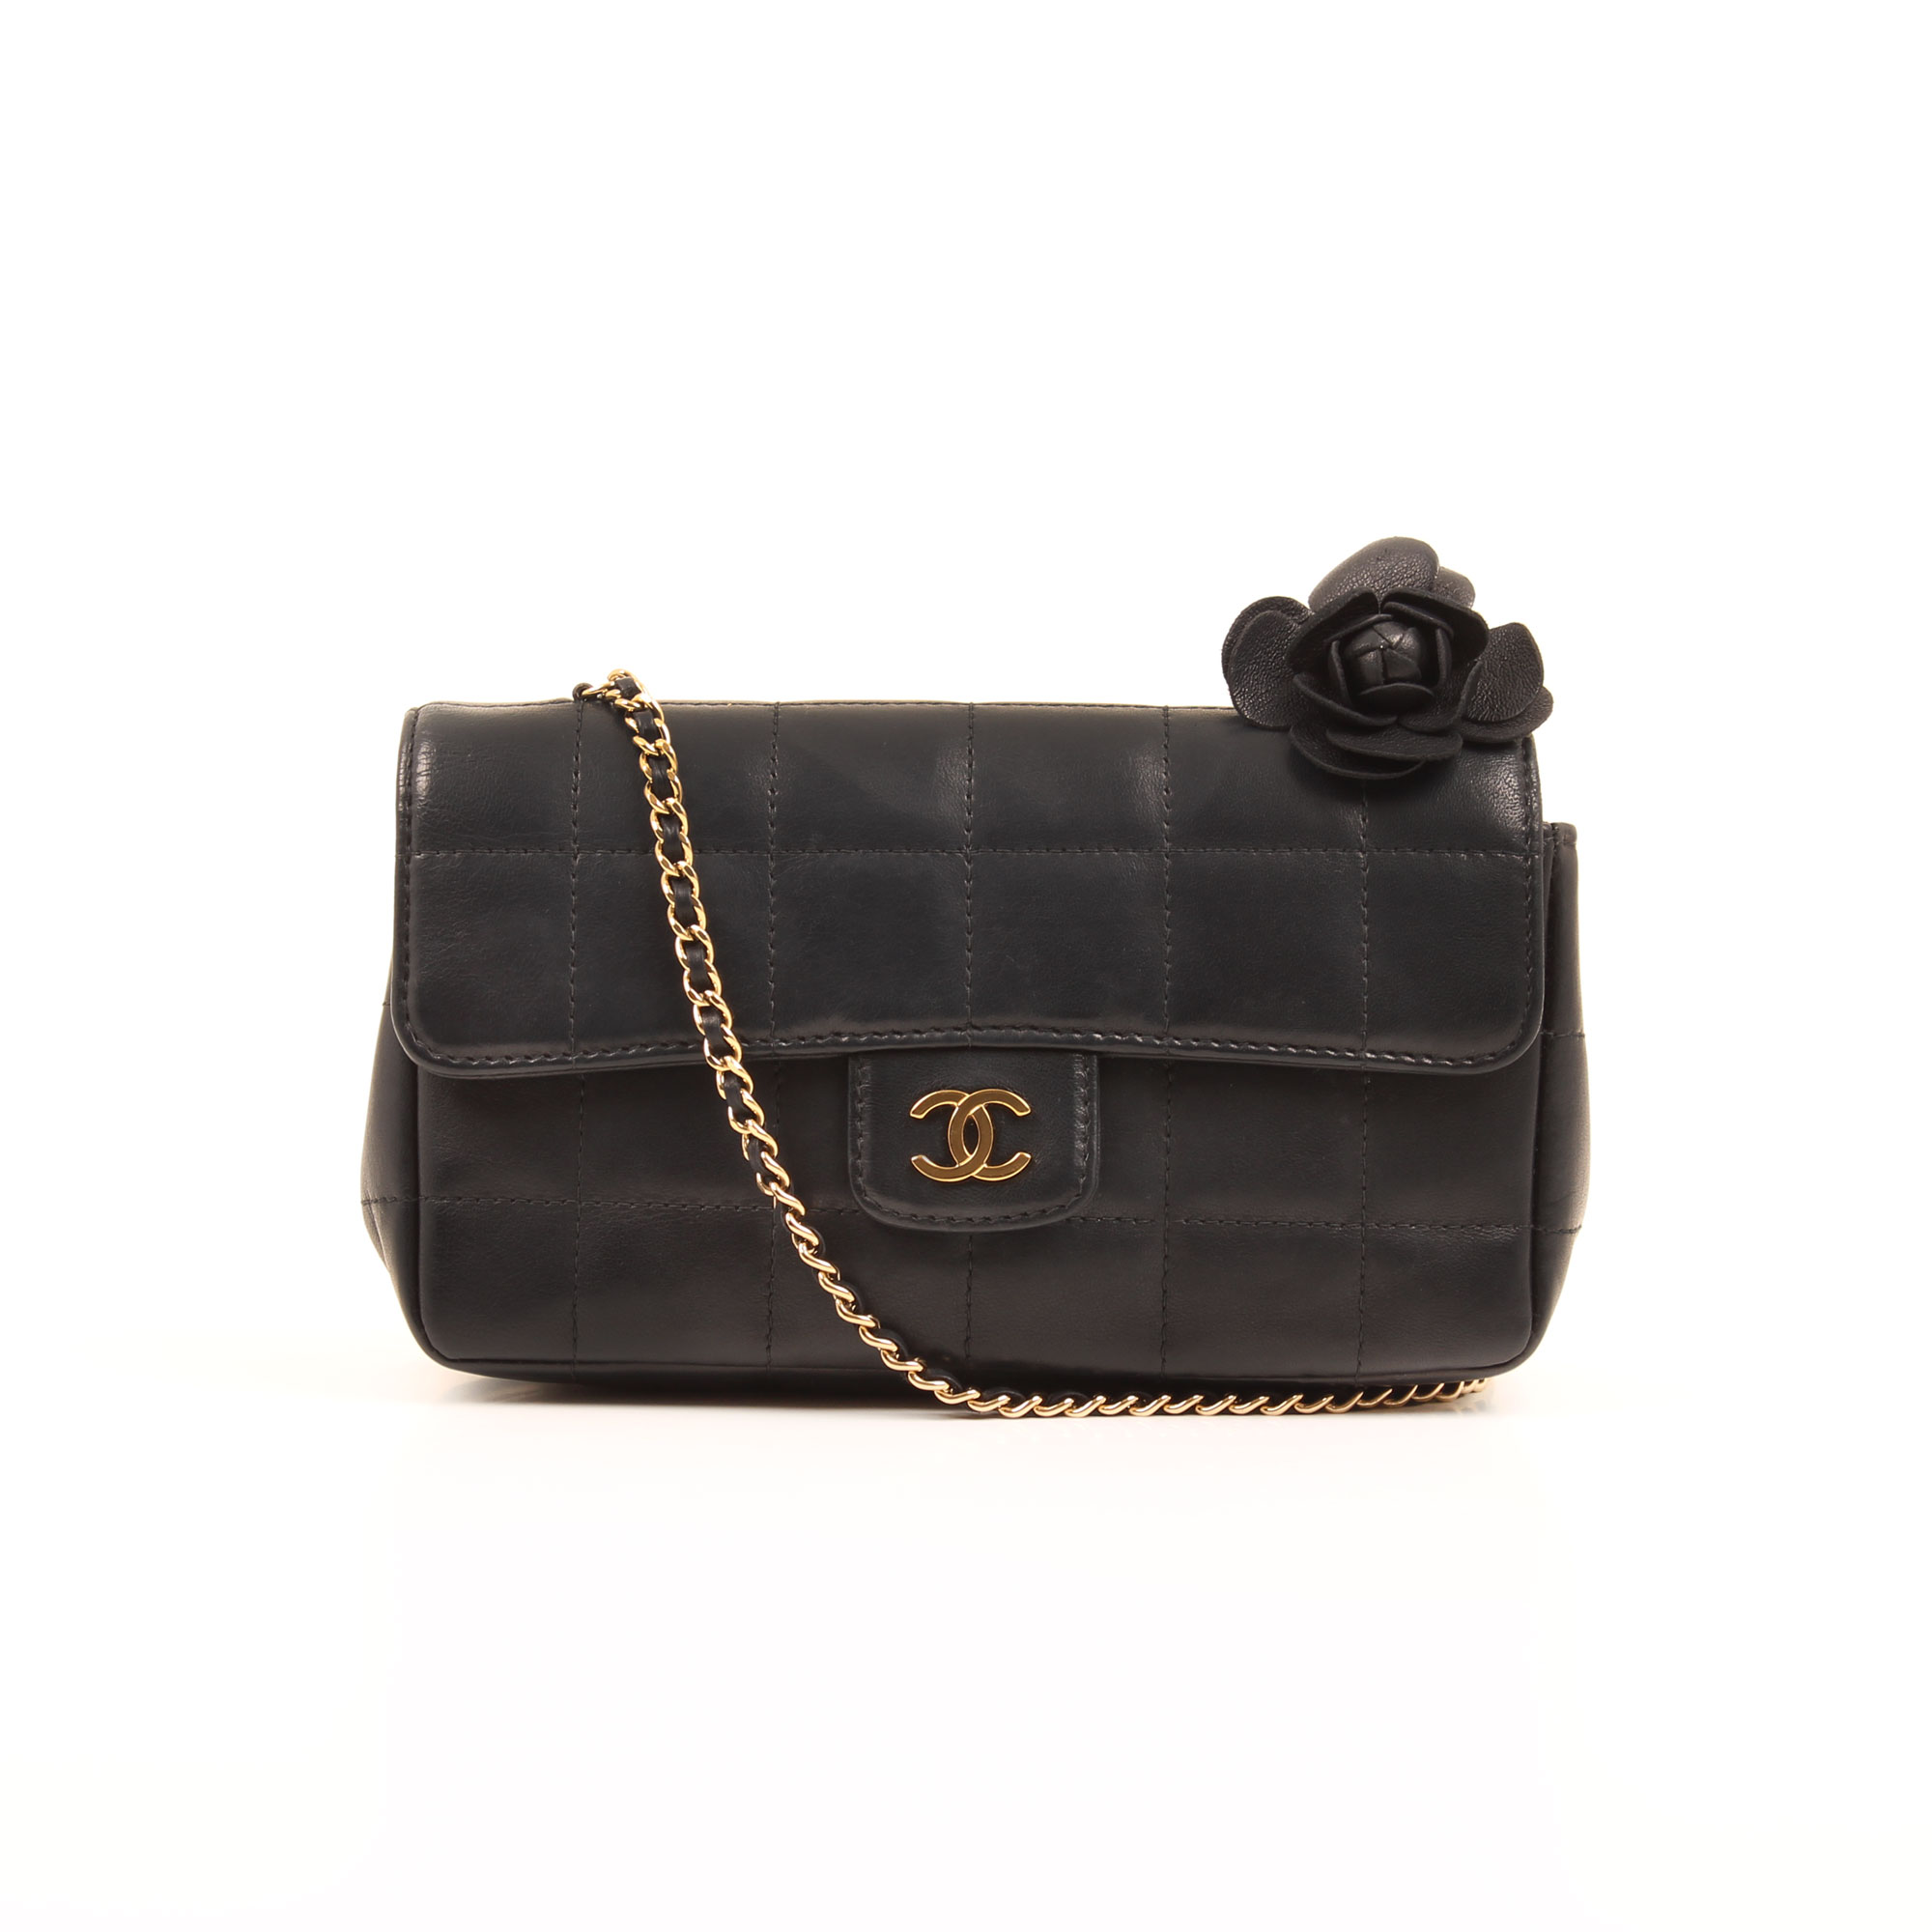 Front image of chanel mini cross body chocolate bar navy blue camelia